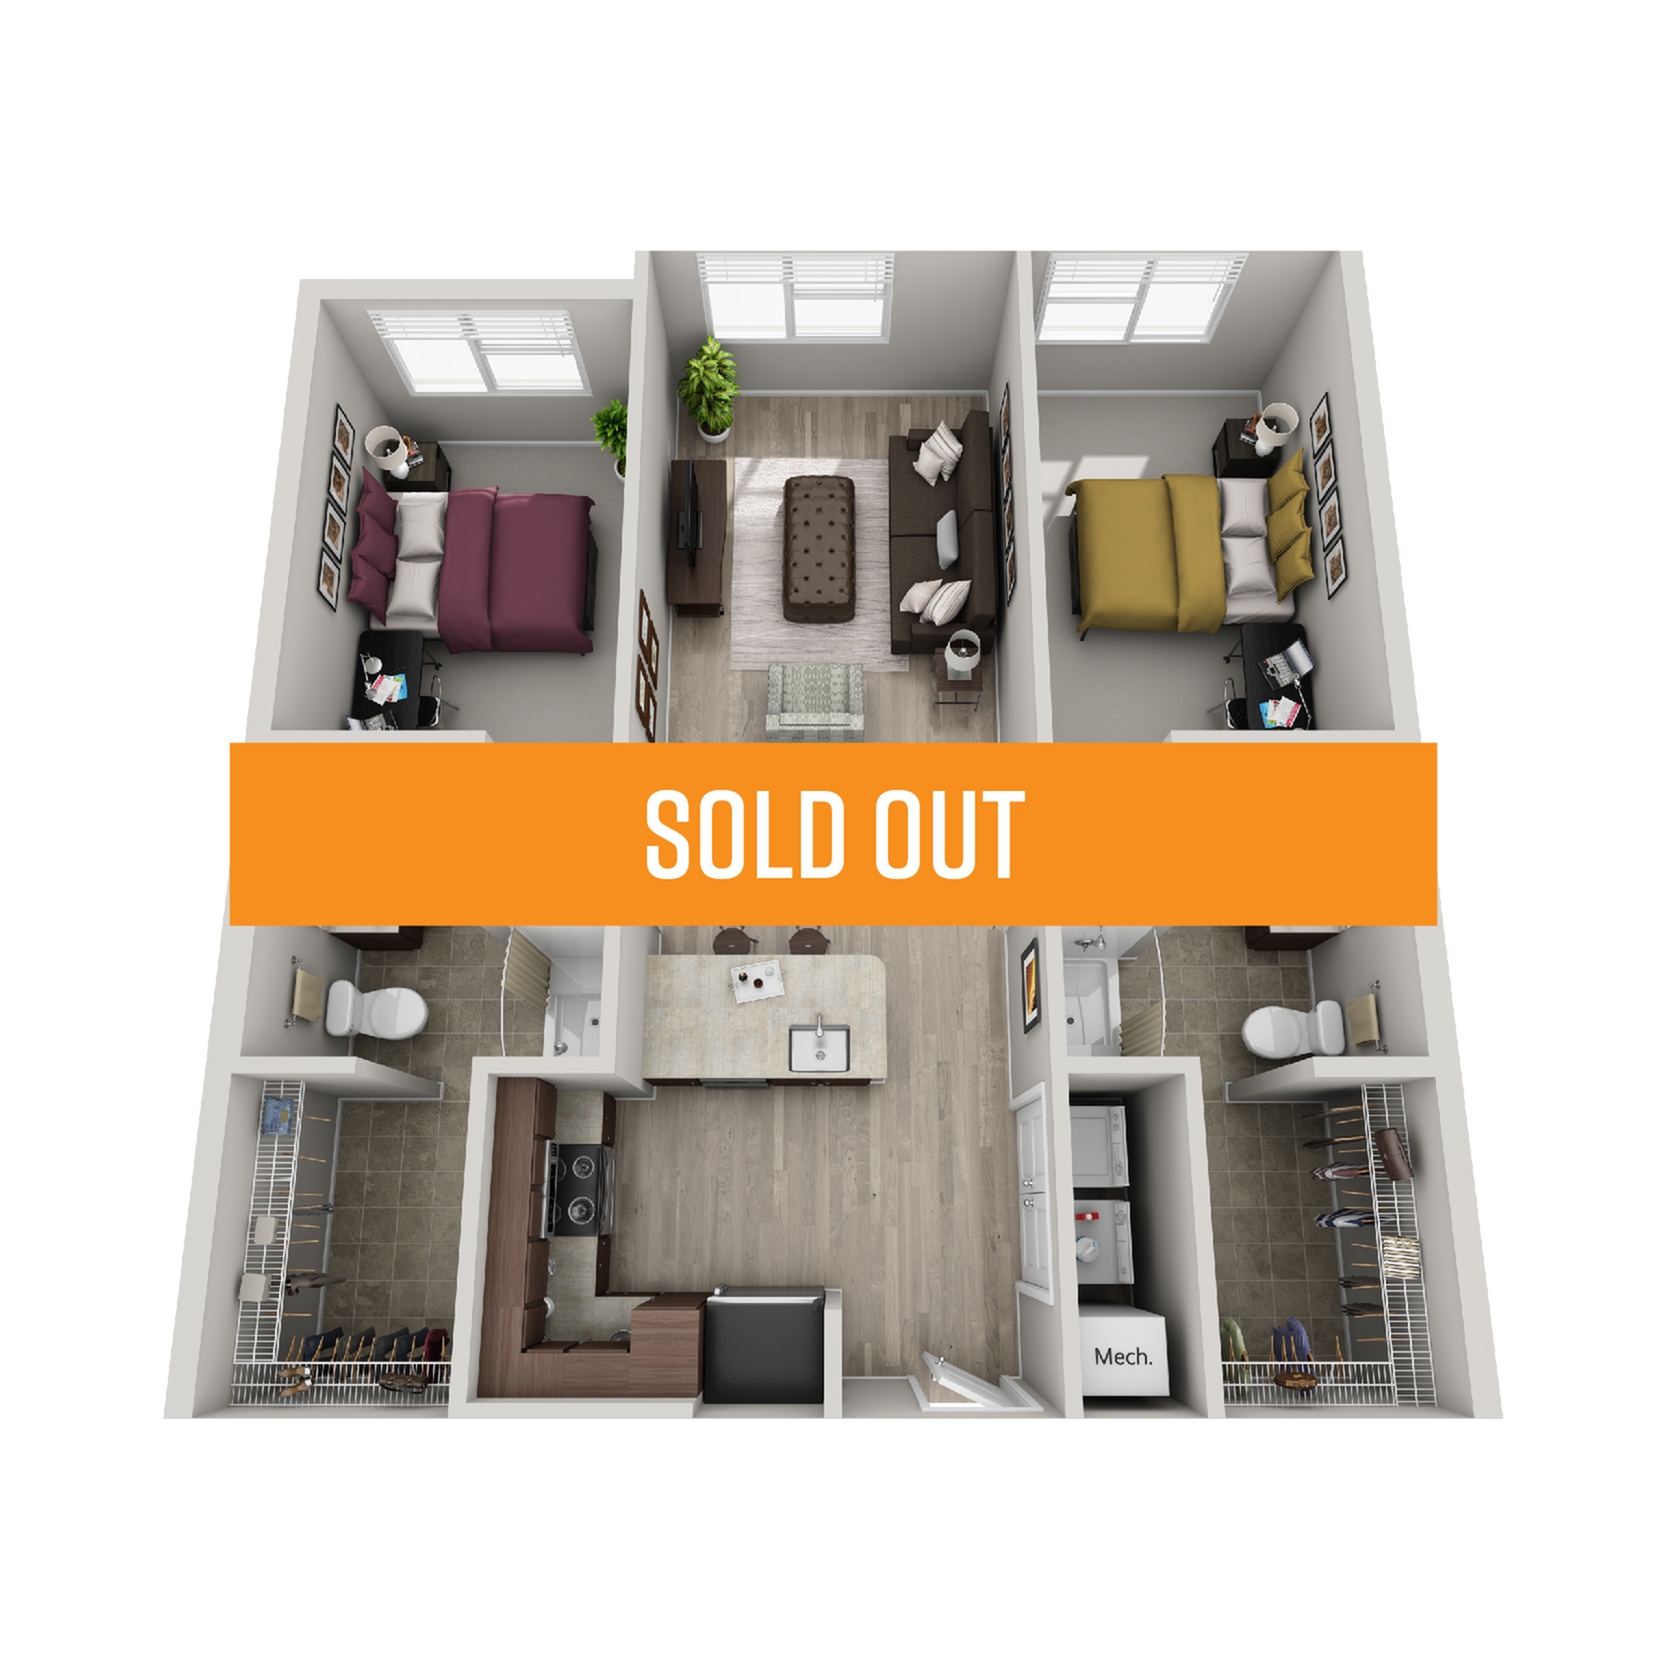 B2- Dyer sold out